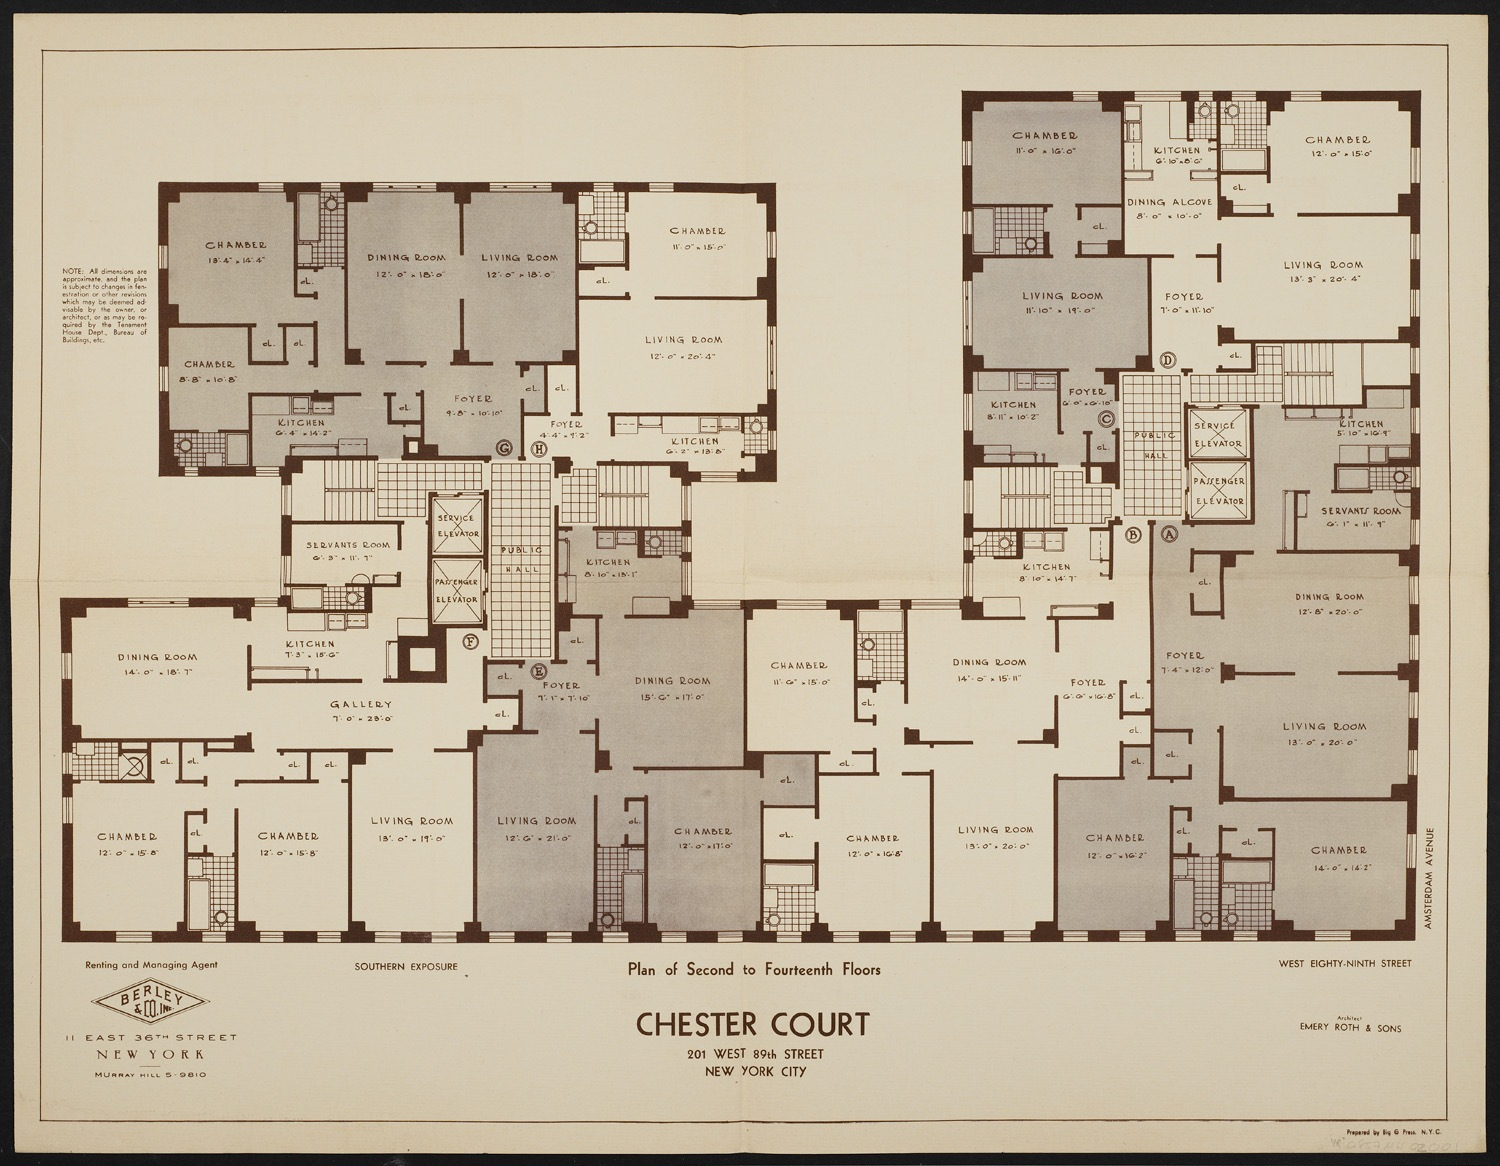 New York City Apartment Building Floor Plans